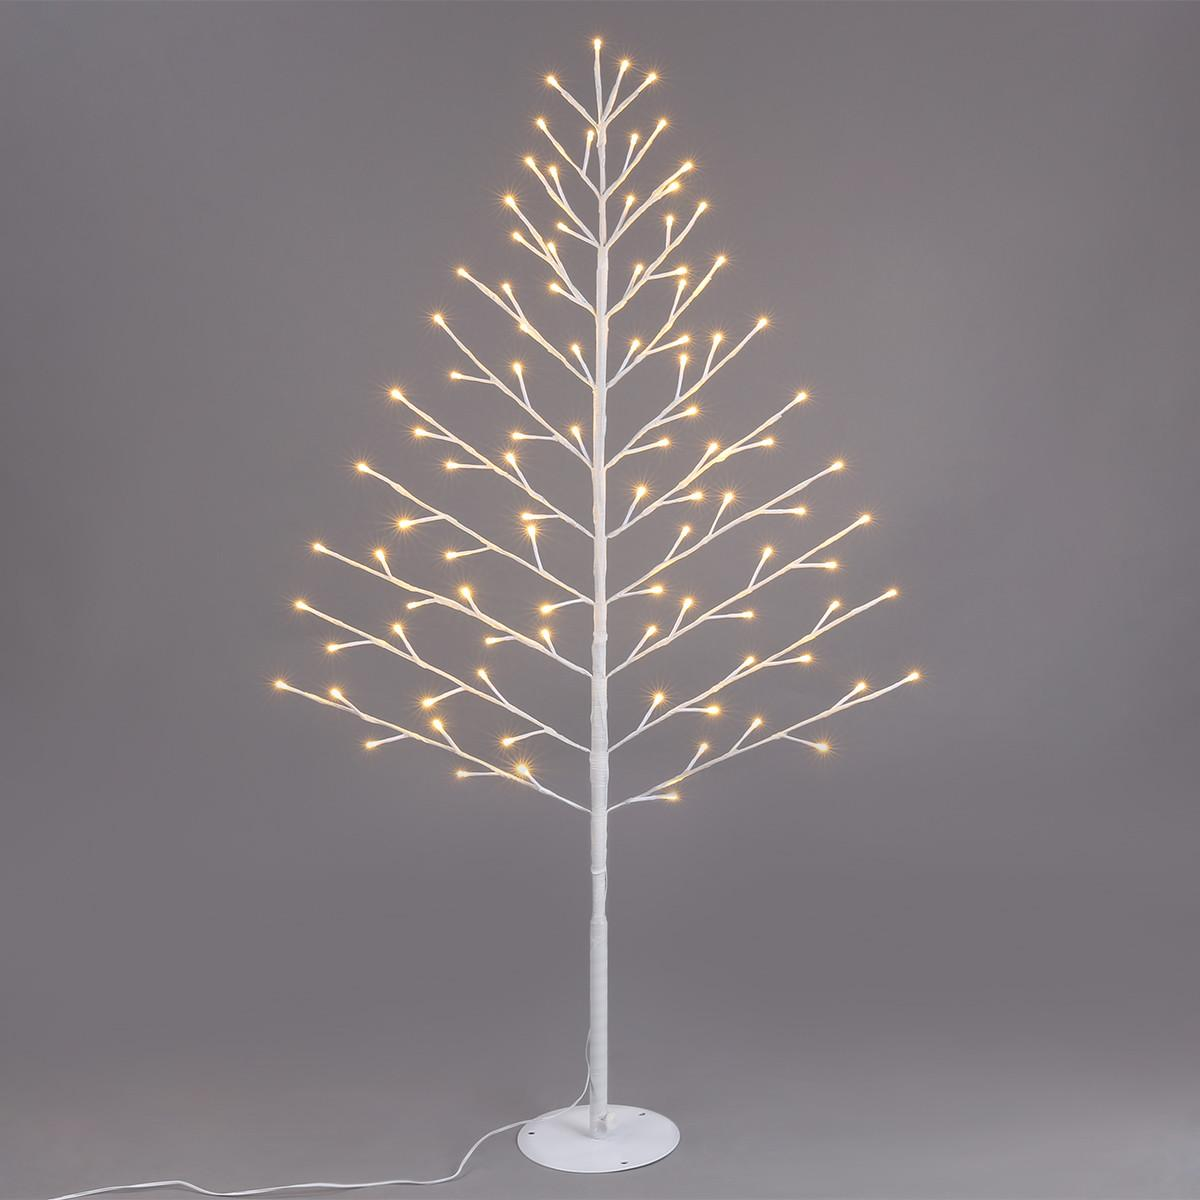 120cm Led Tree Lights Twig Lamp Yard Lobby Bedroom Bonsai